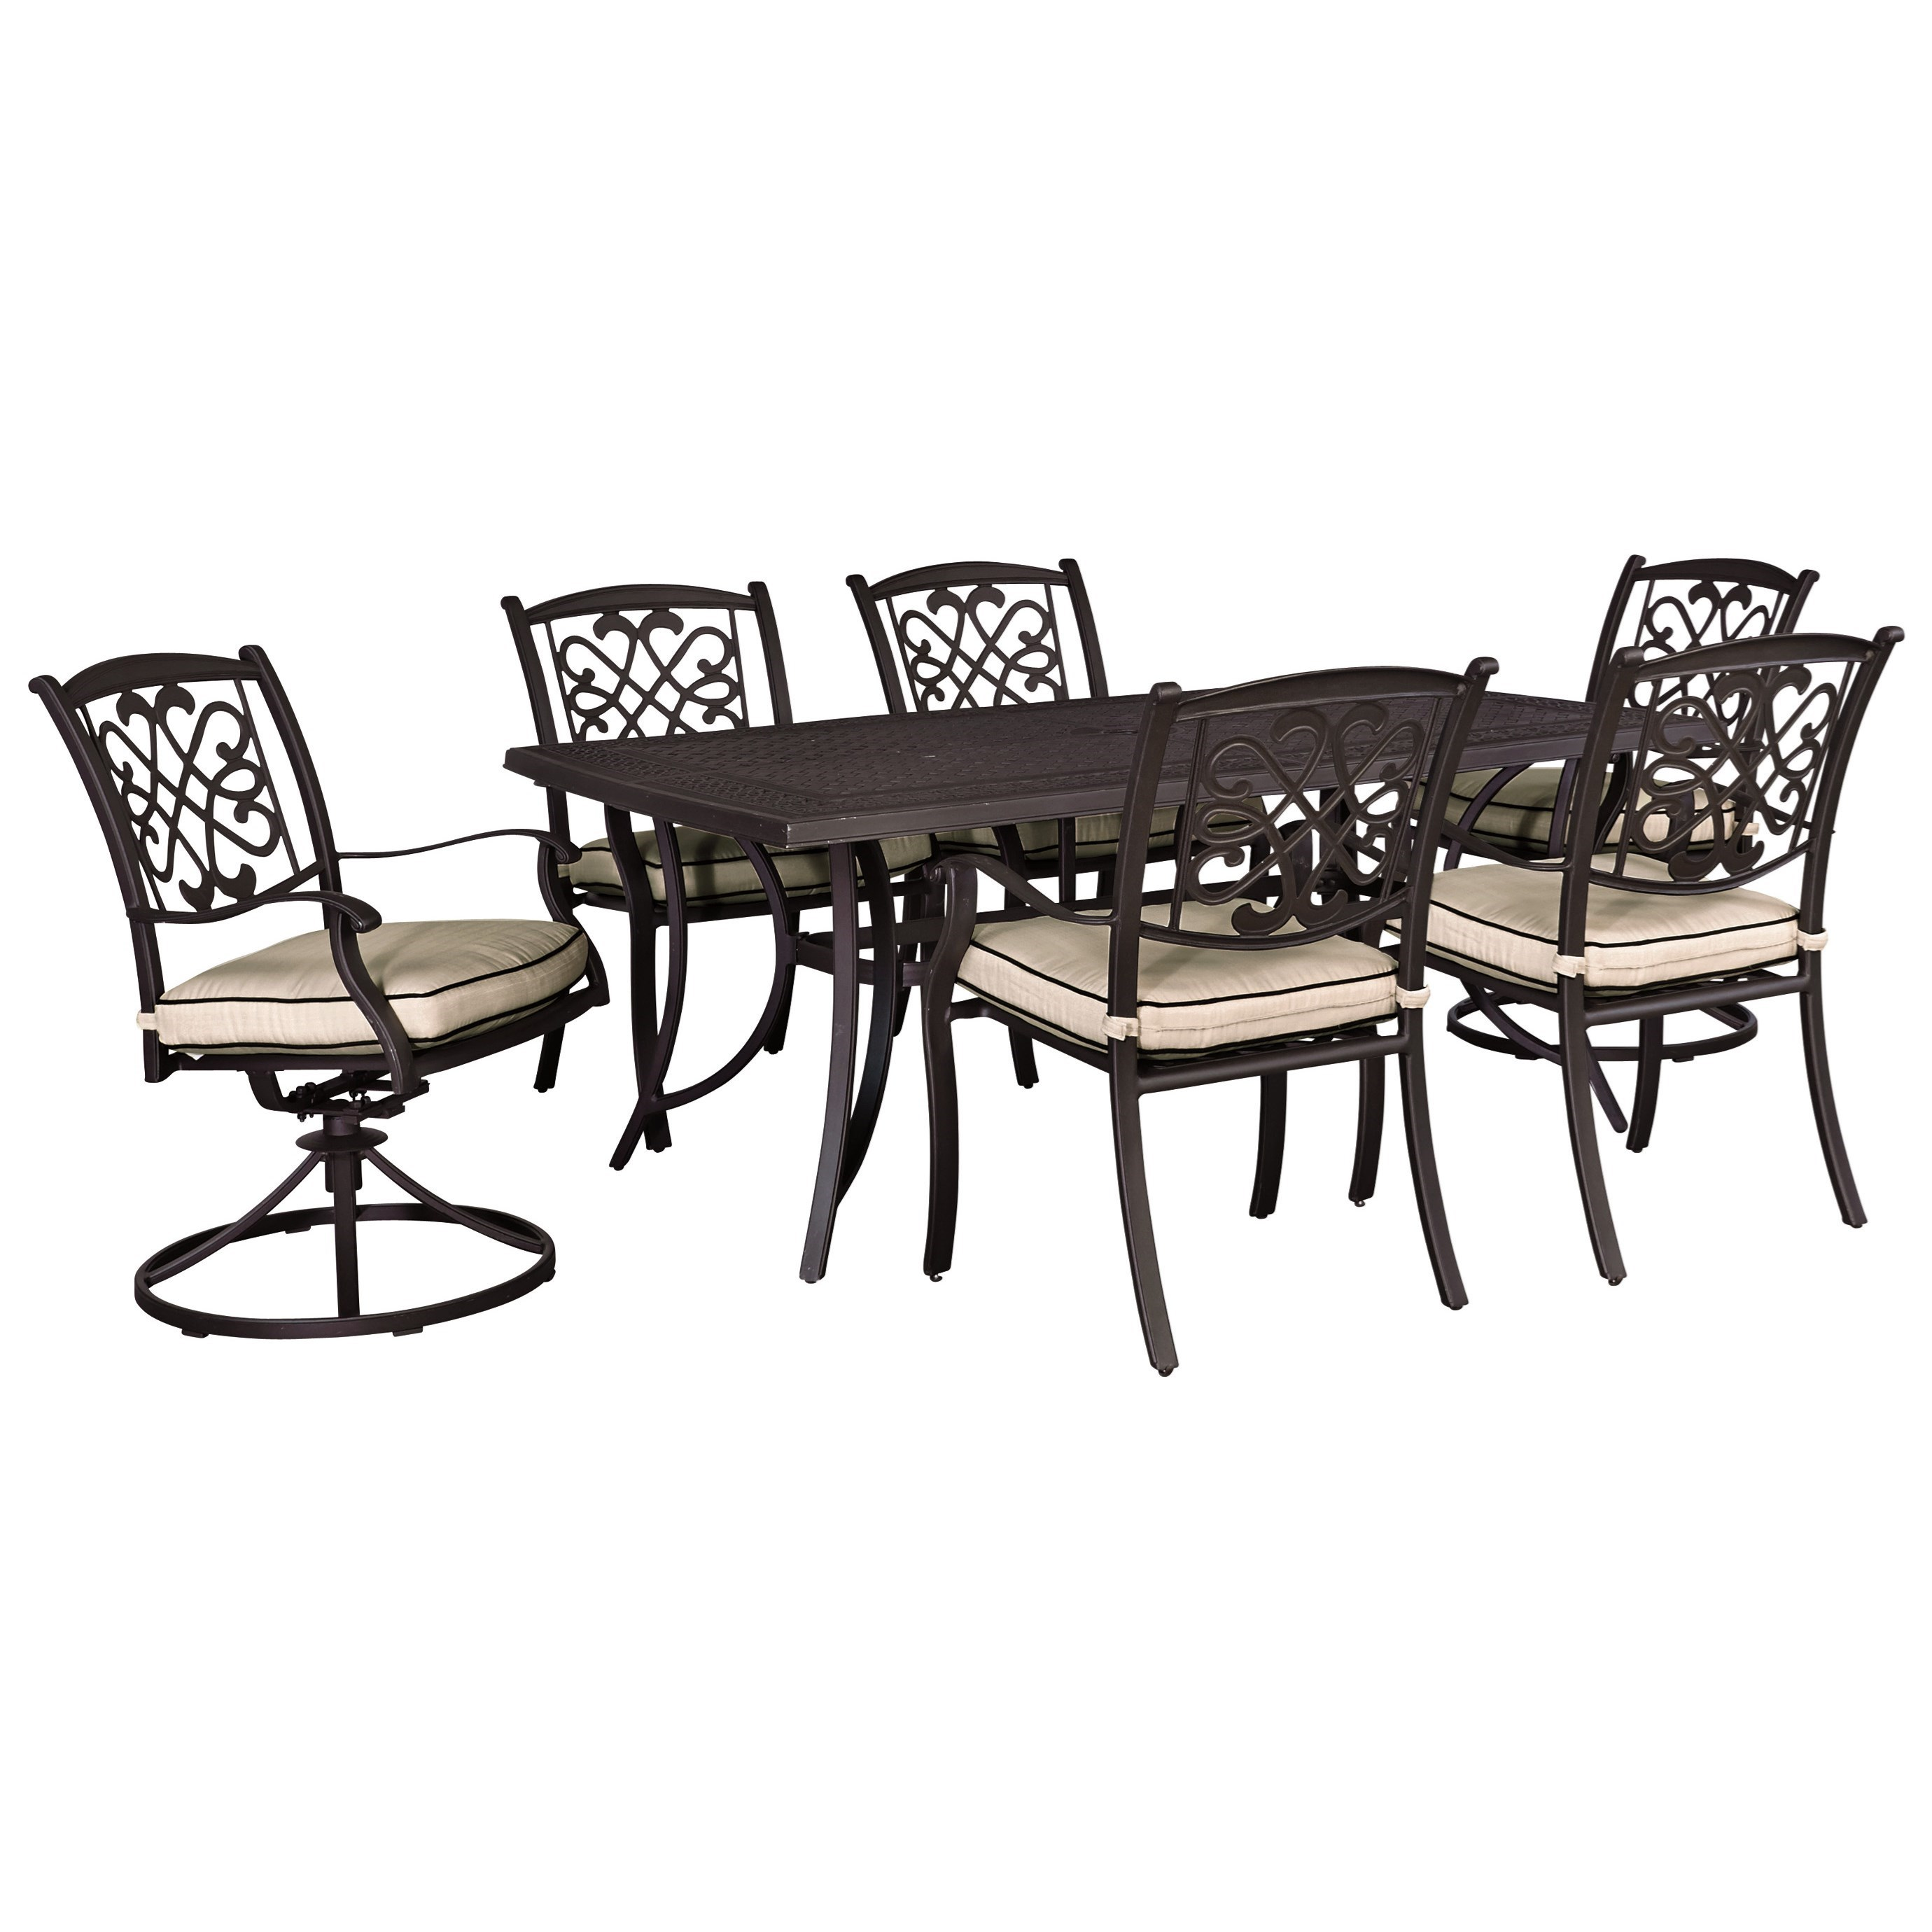 Signature Design by Ashley Burnella Outdoor Dining Set Del Sol Furniture